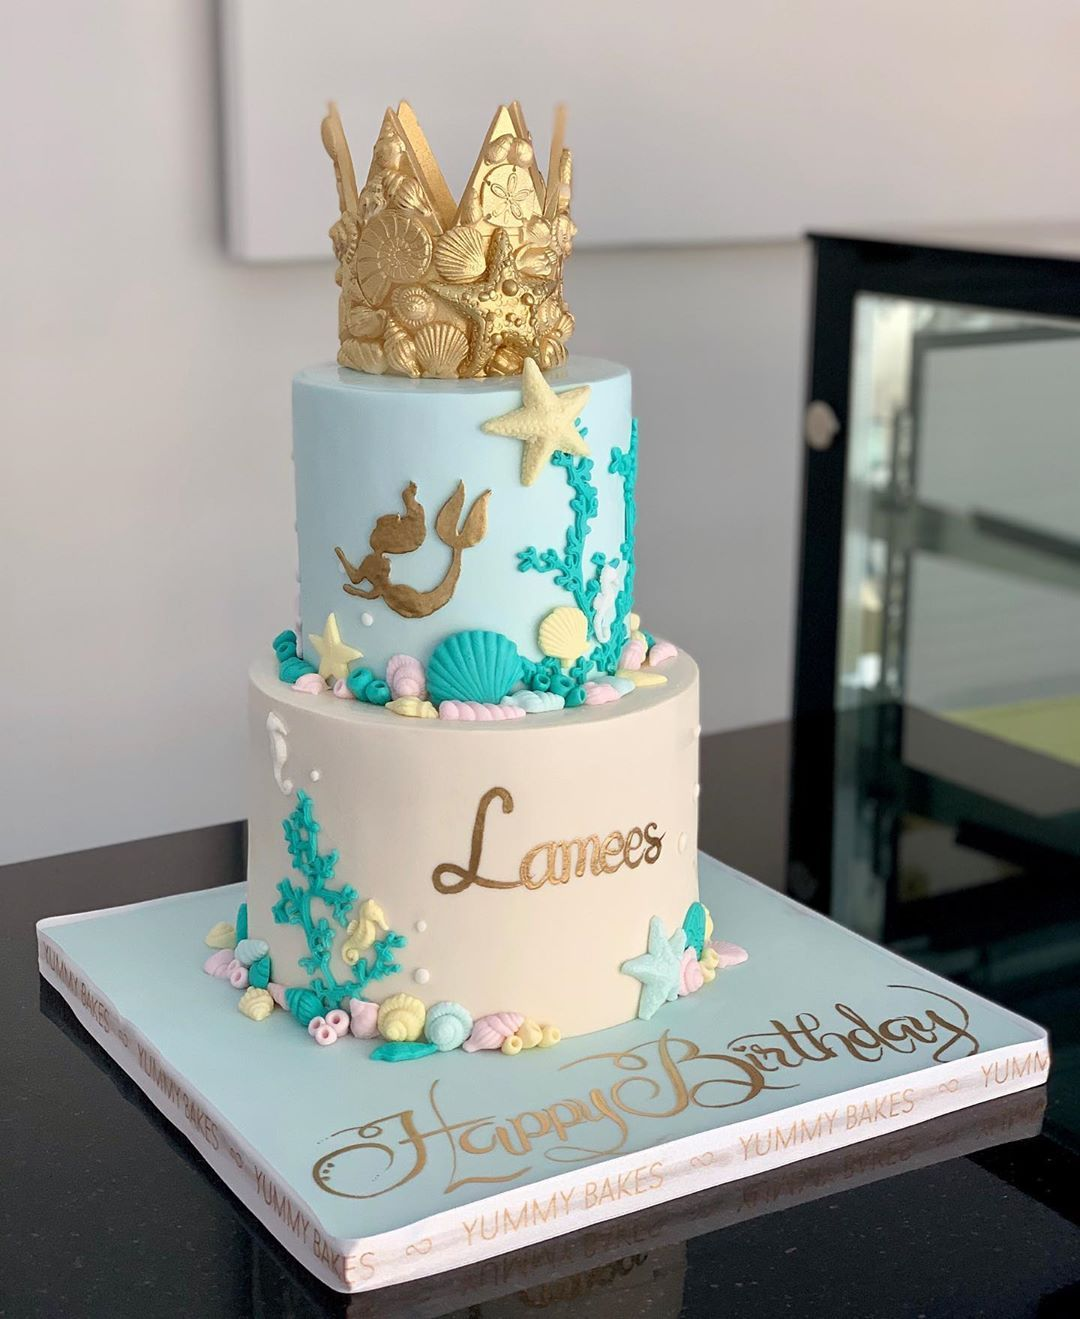 كيك عيد ميلاد للبنات كيكه حورية البحر الامارات Dumbo Birthday Cake In Abu Dhabi Uae Customized Kids Birthday Cake In Abu Dhabi Cake Kids Party Desserts